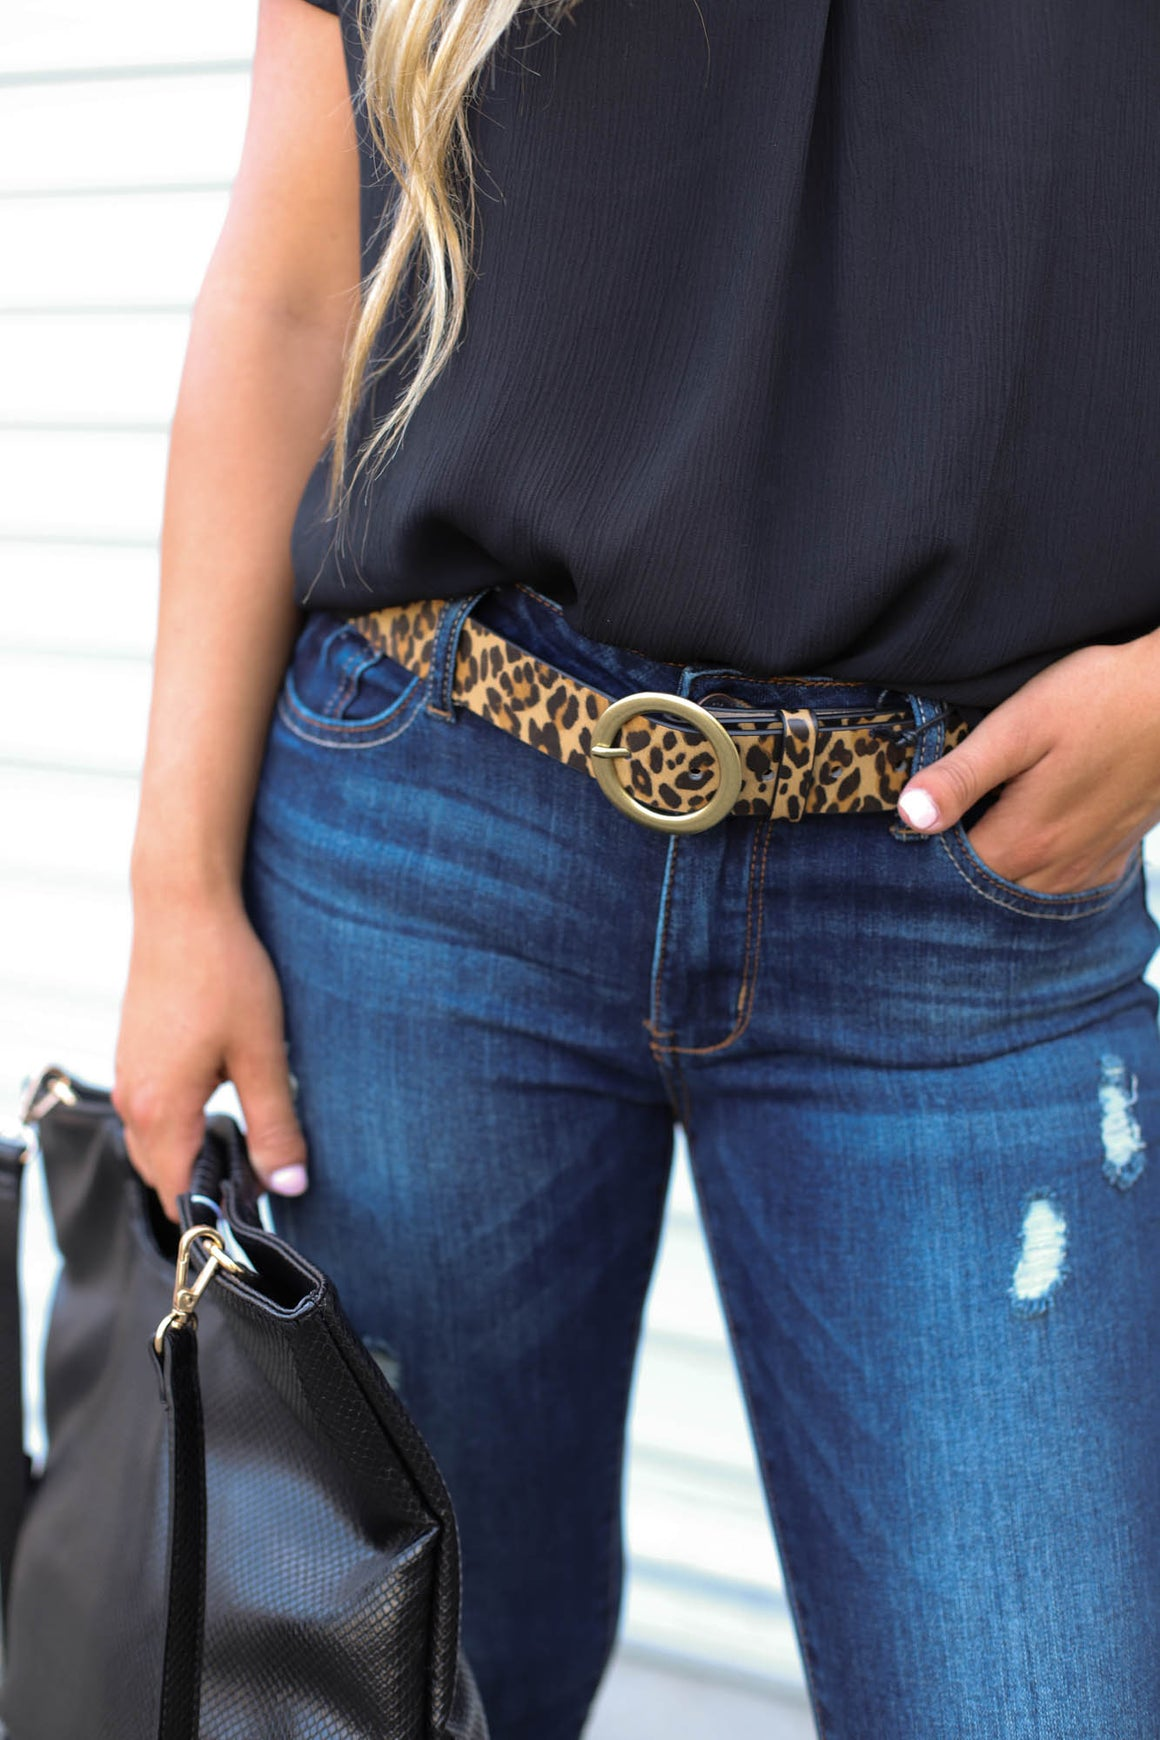 Major Danger Leopard Belt - ShopSpoiled